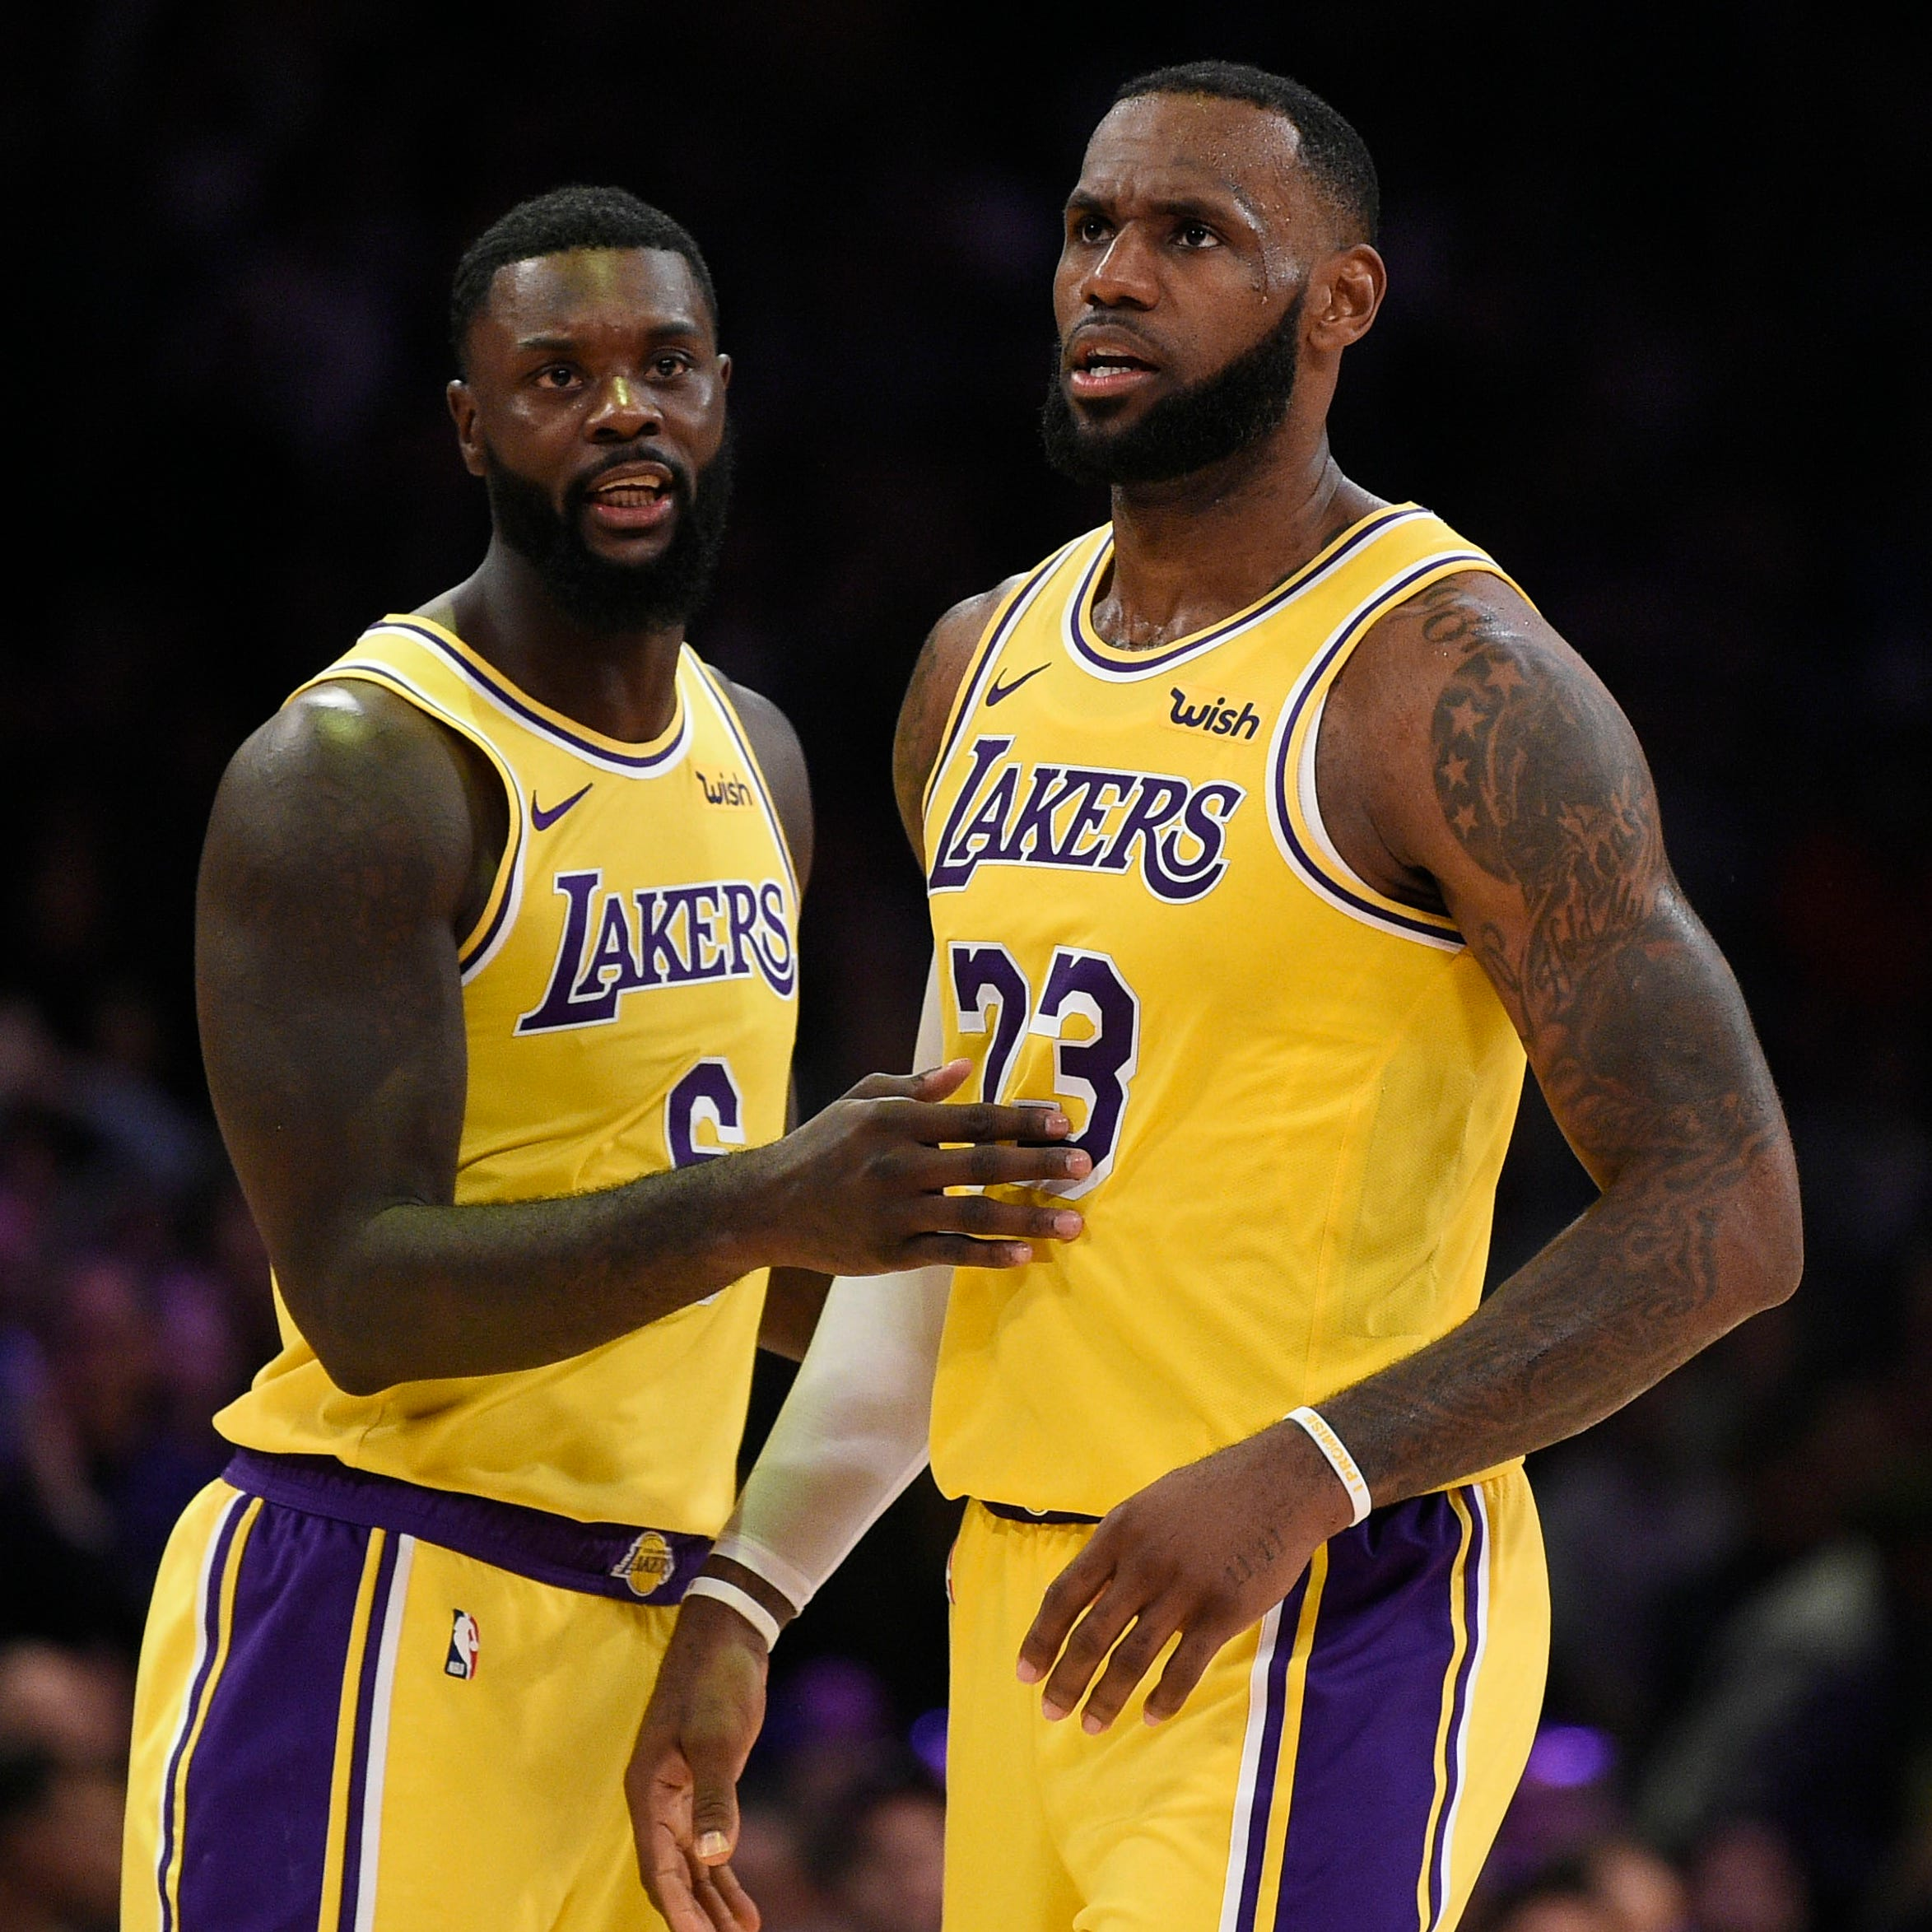 Lance Stephenson's peer pressure forced LeBron James to take late 3-pointer in Lakers' win